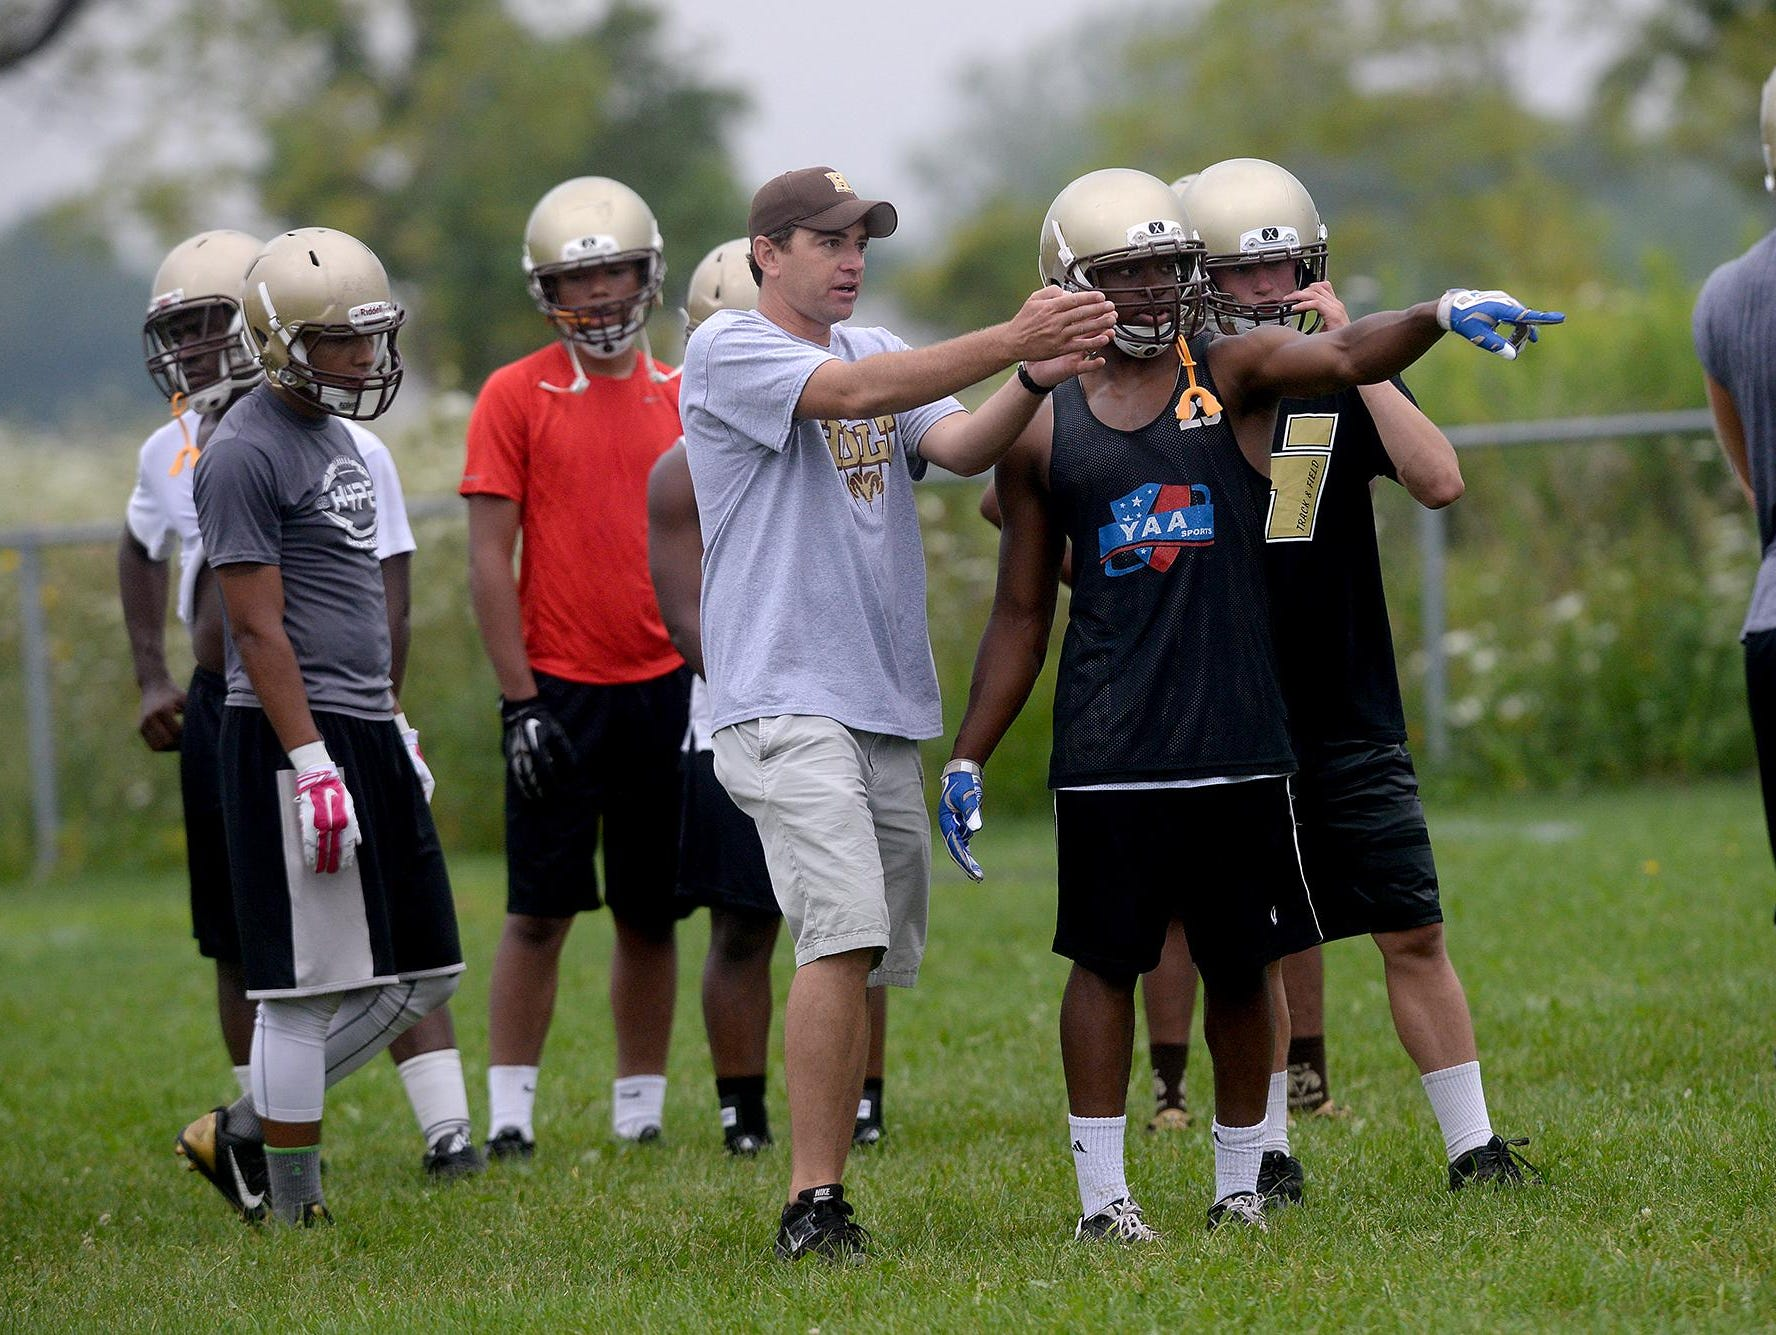 Head Coach Chad Fulk goes over a play with a running back Monday, August 10, 2015,l during drills on the first day of practice for the Rams. Fulk, a 1995 graduate of Holt, is in his first year as head coach of the Rams.